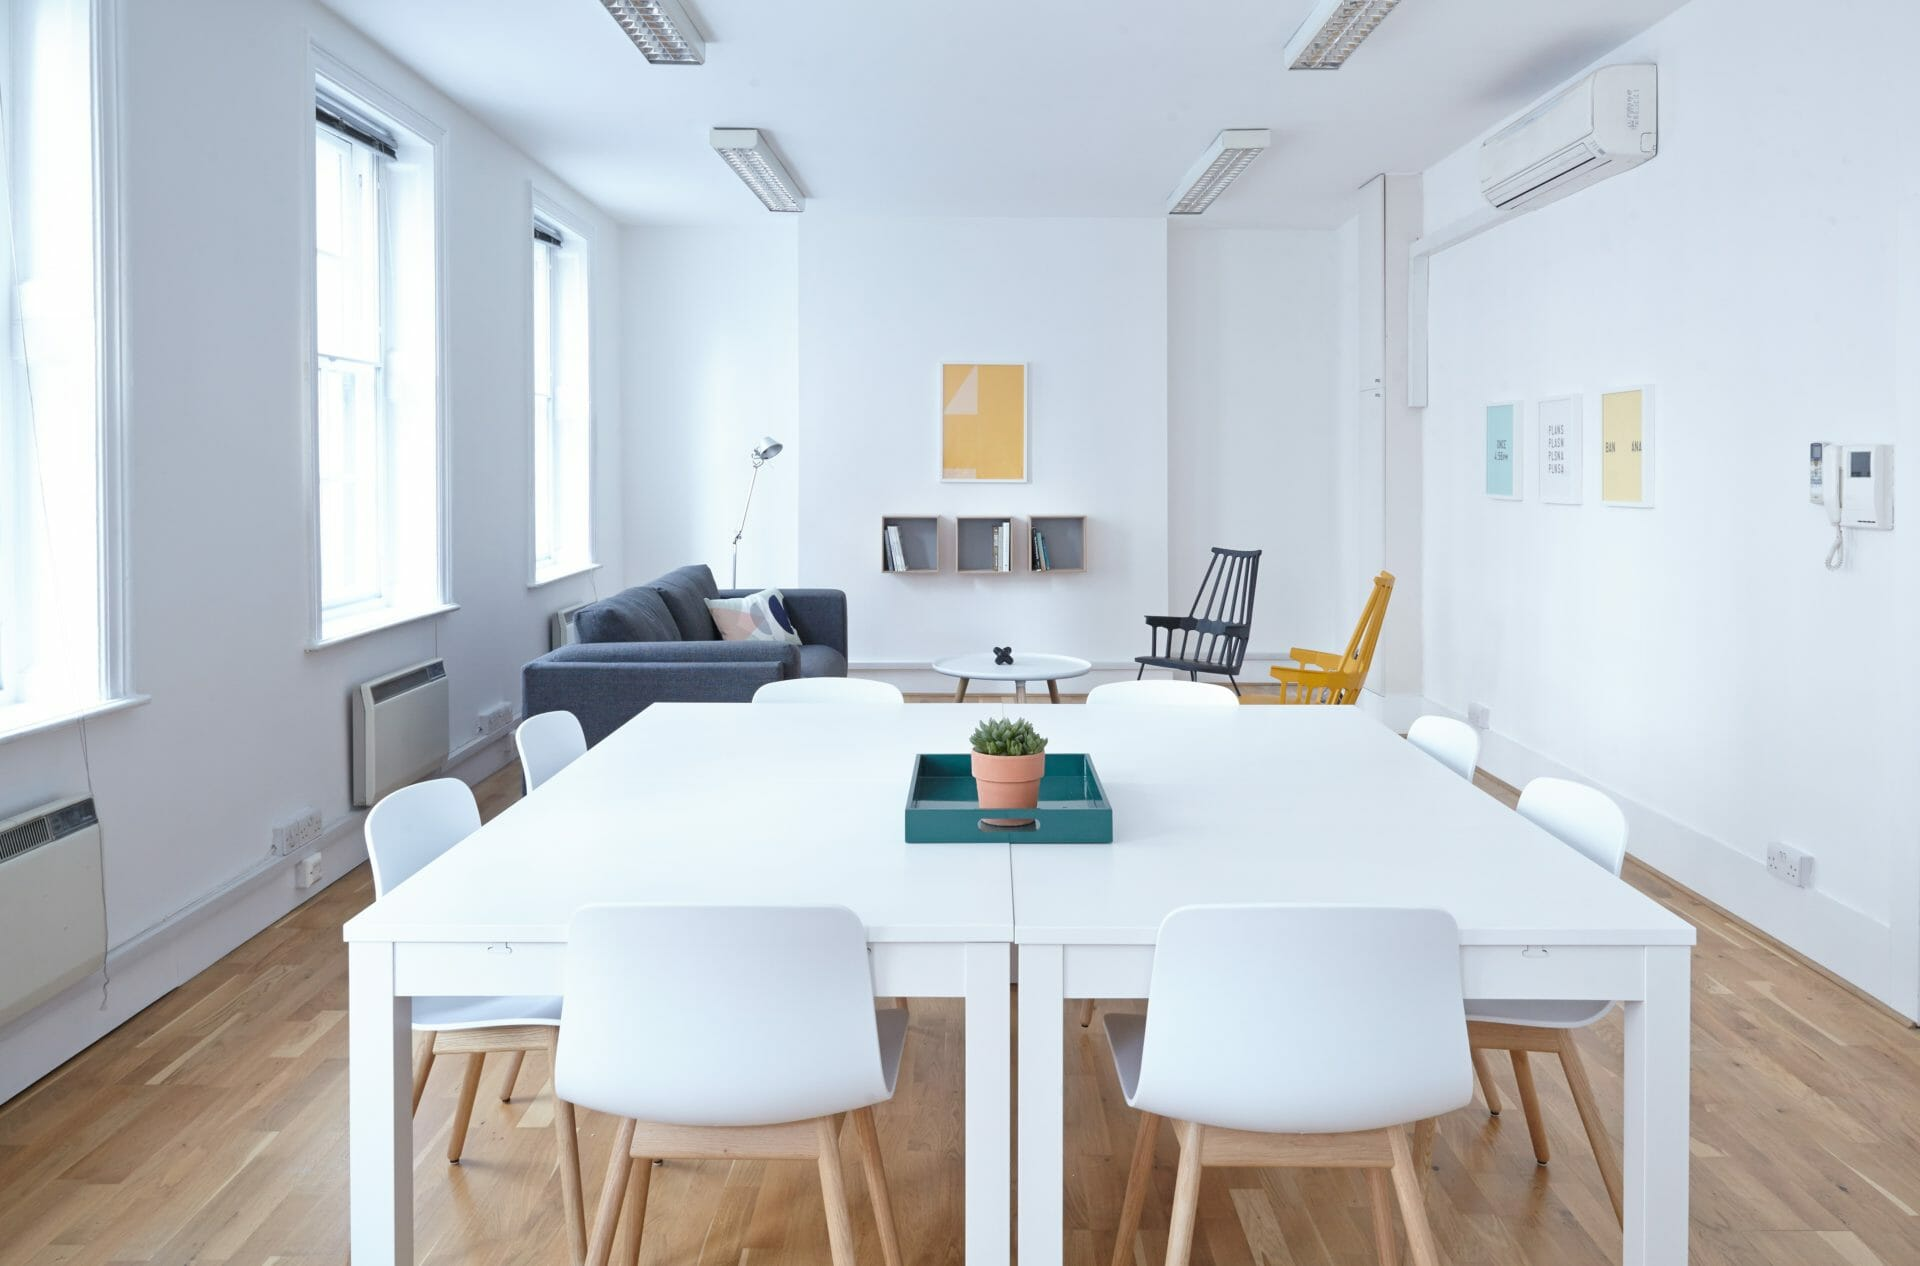 Picture of a Living Space for Real Estate News for Investors Podcast Episode #501